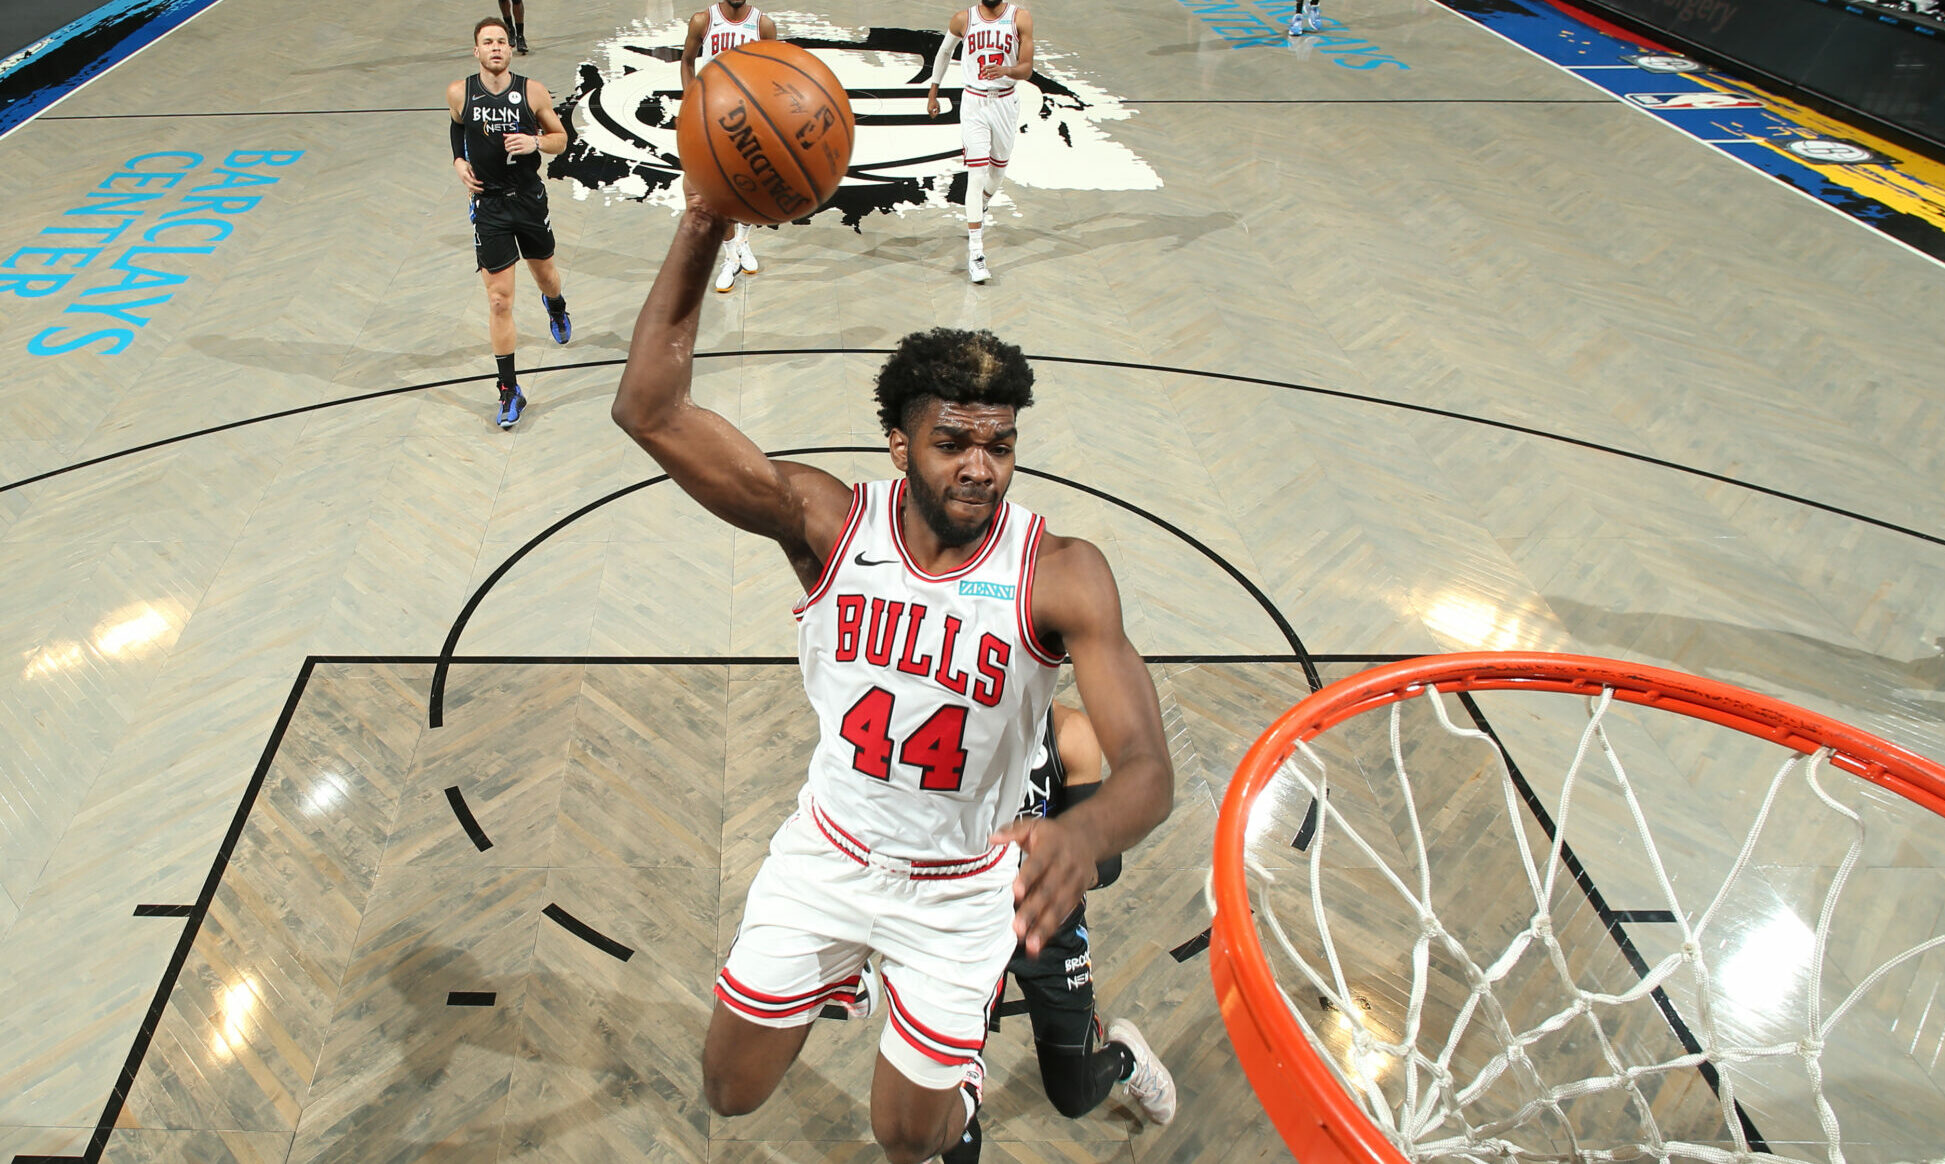 Bulls' Patrick Williams could miss start of season with ankle injury